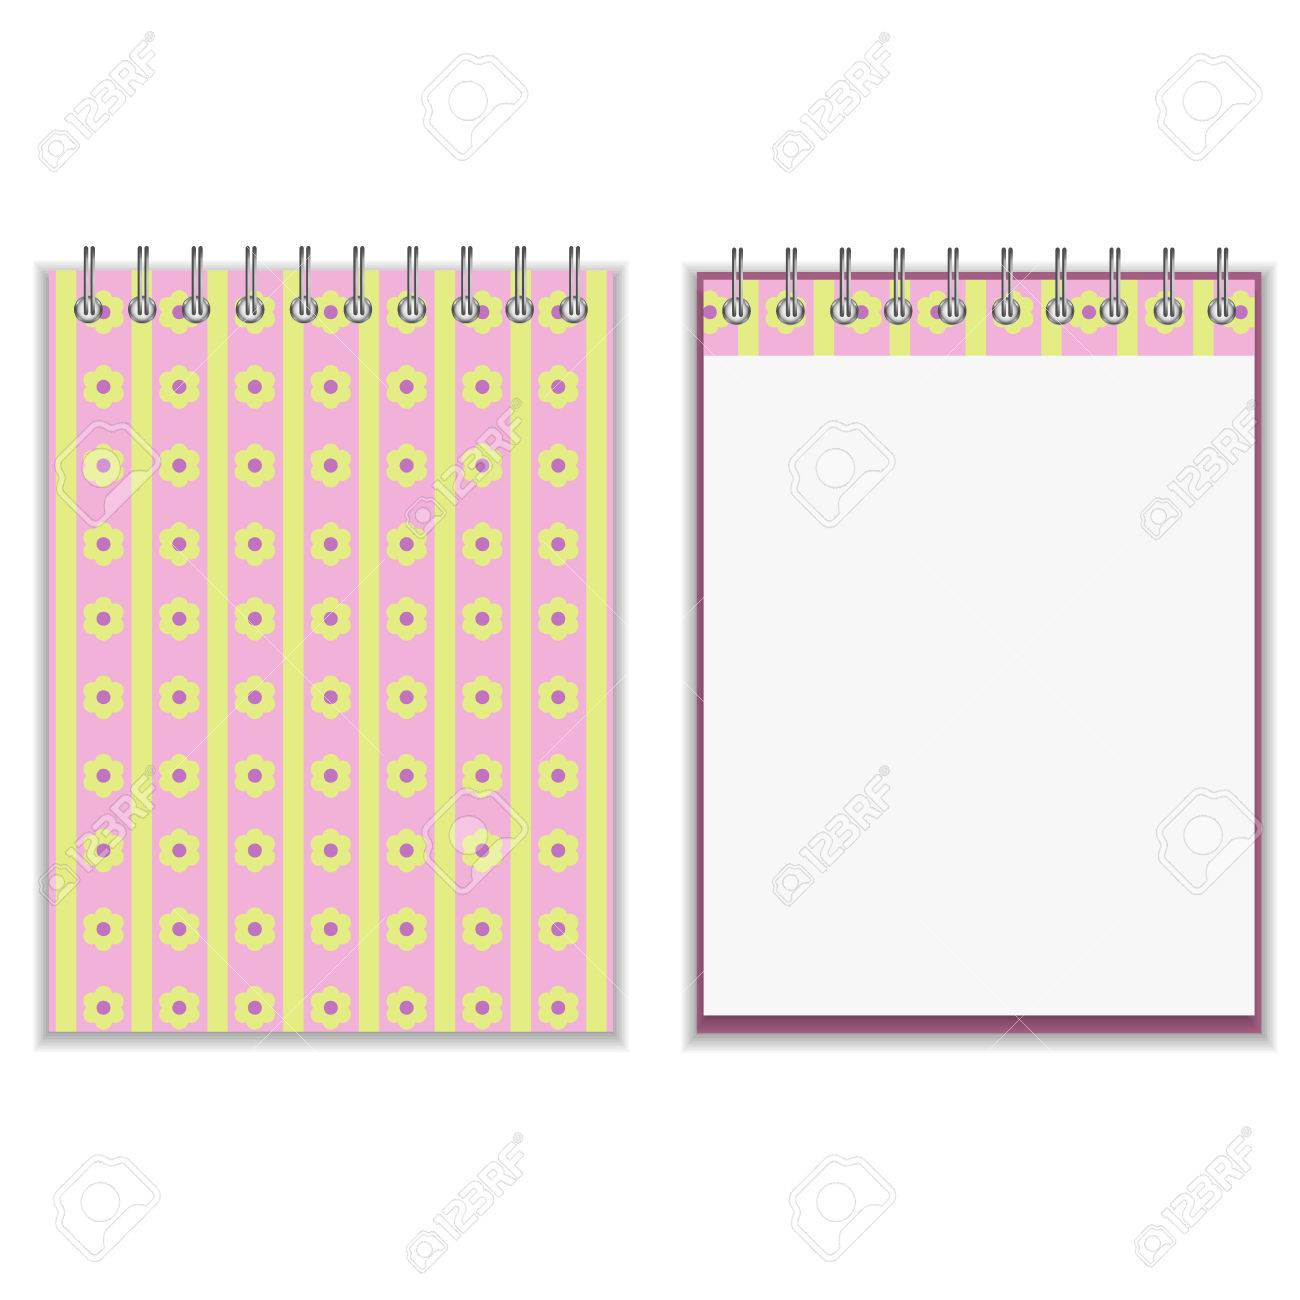 floral style pink and yellow notebook cover design same floral style pink and yellow notebook cover design same element on the page isolated